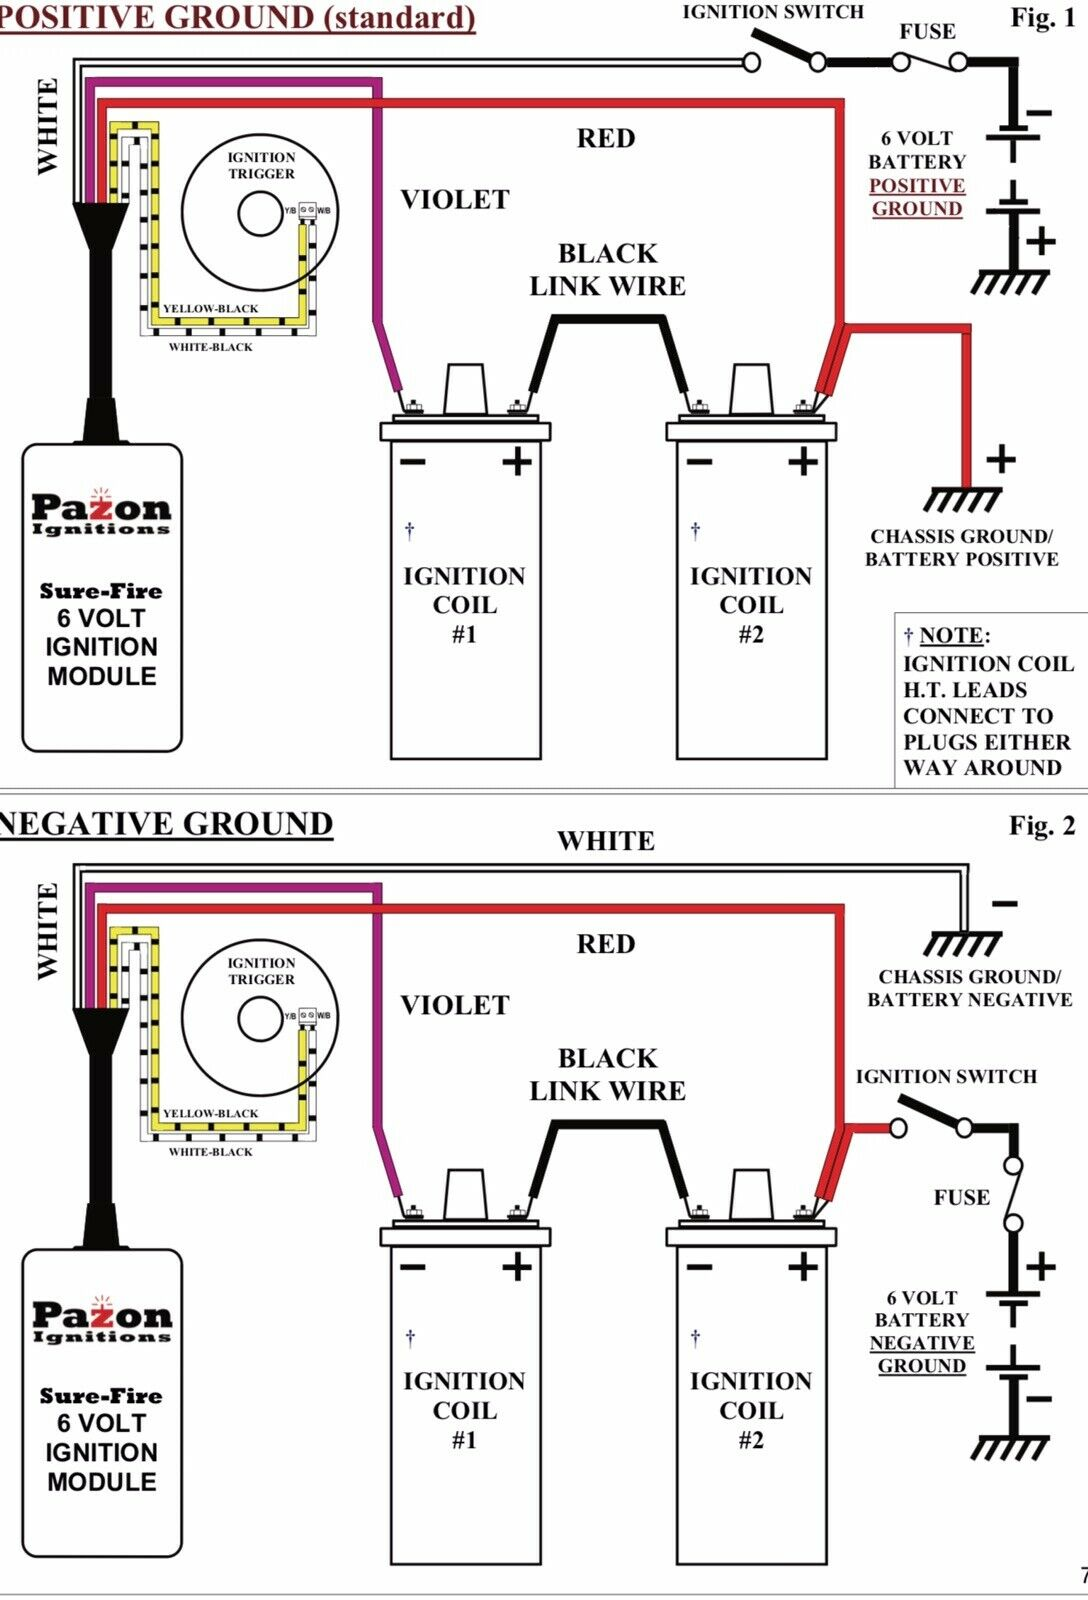 hight resolution of pazon wiring diagram wiring diagram pass pazon wiring diagram pazon electronic ignition twin cylinder triumph bsa